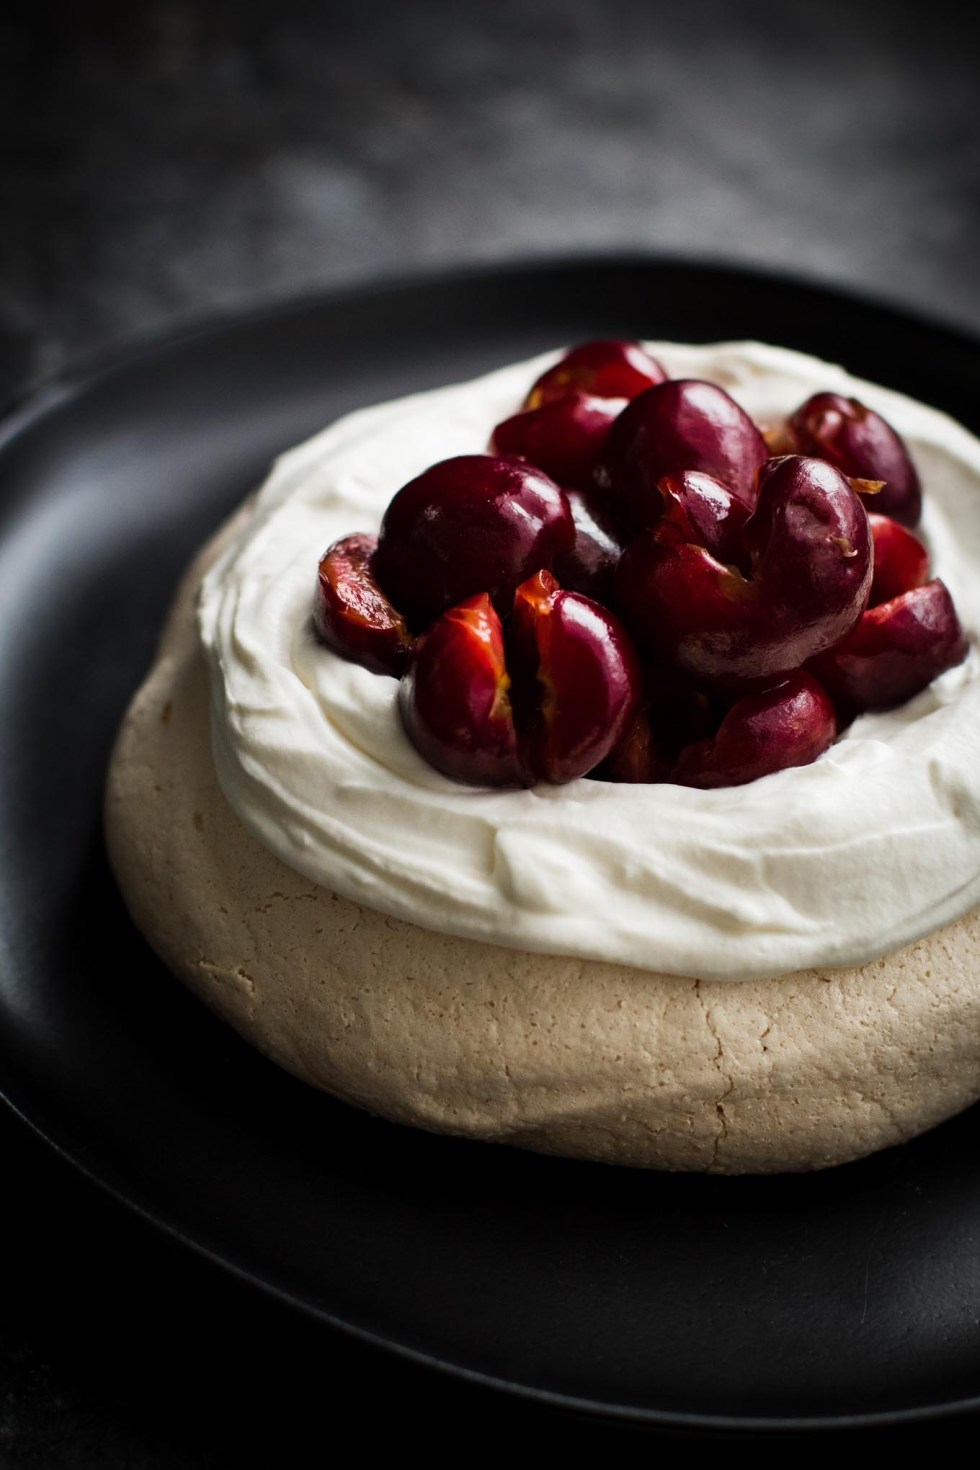 Close-up of pavlova with a pillow of whipped cream and scoop of bourbon cherries